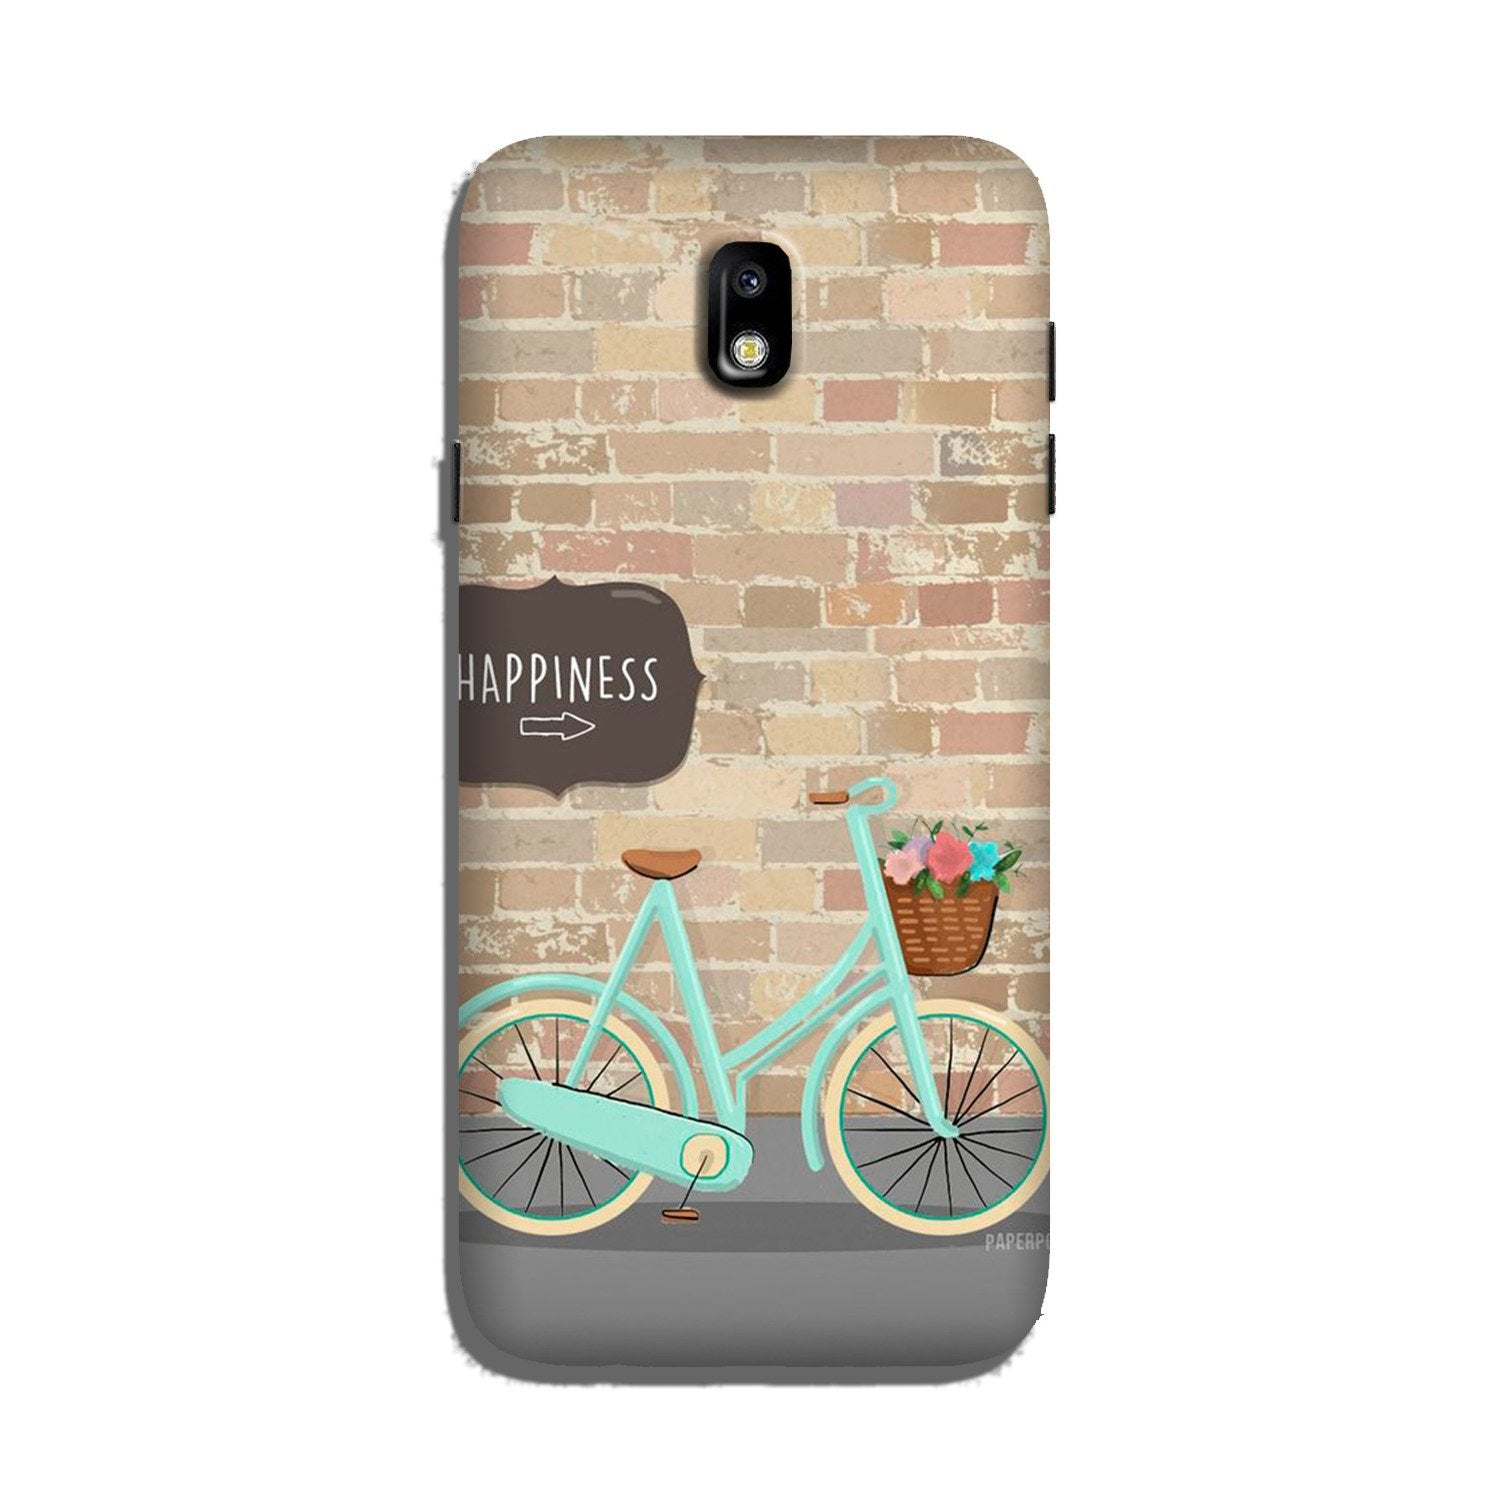 Happiness Case for Galaxy J7 Pro